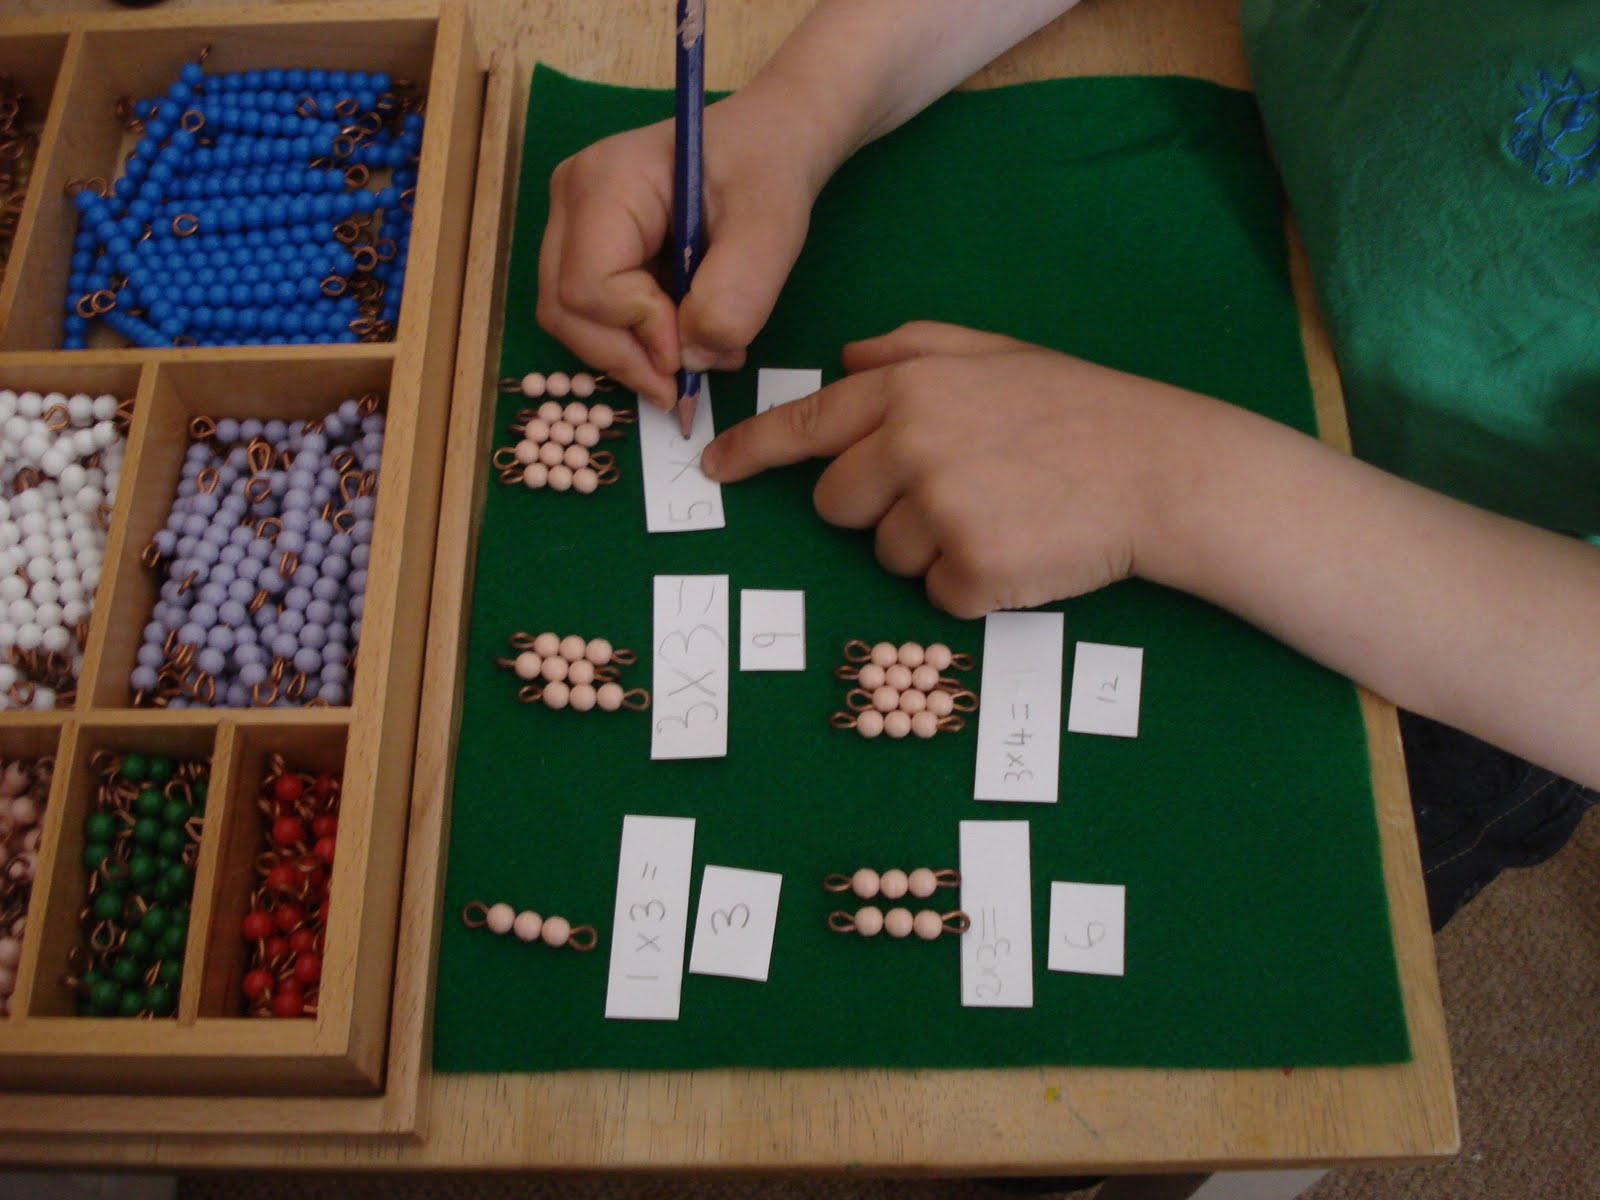 The learning ark elementary montessori times tables times tables gamestrikefo Gallery